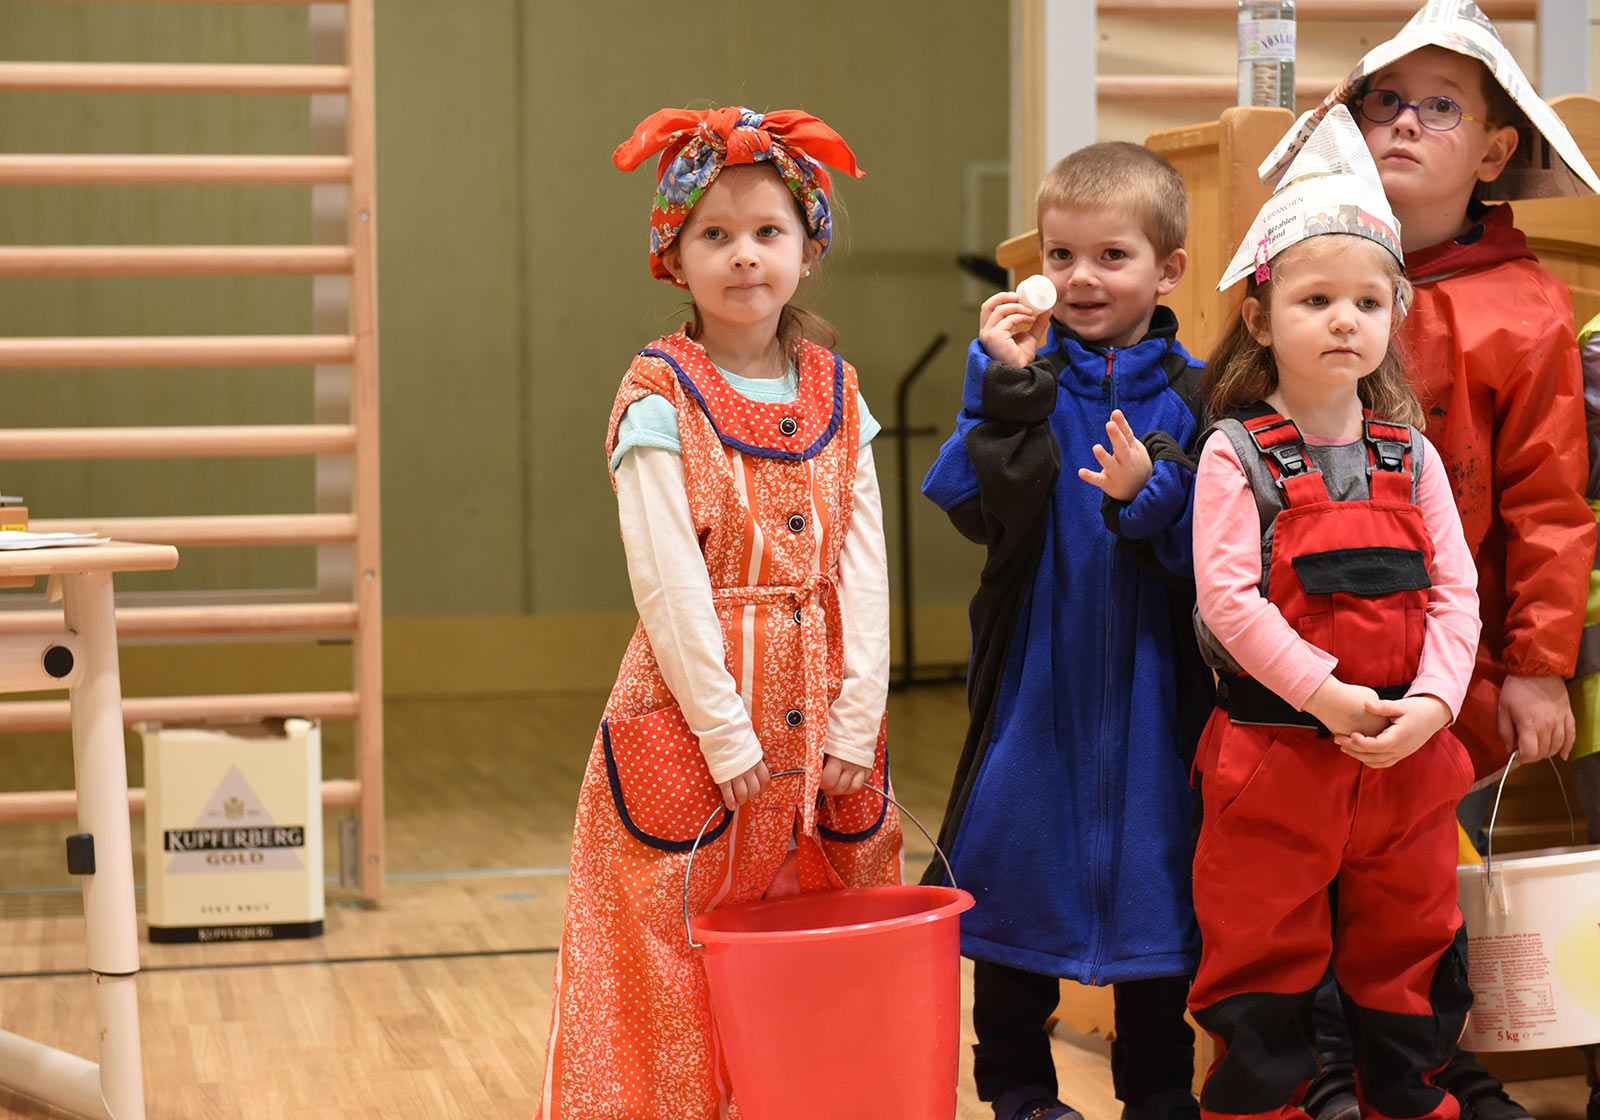 The children in Holzgau are delighted by the new educational center. Photo: ATP